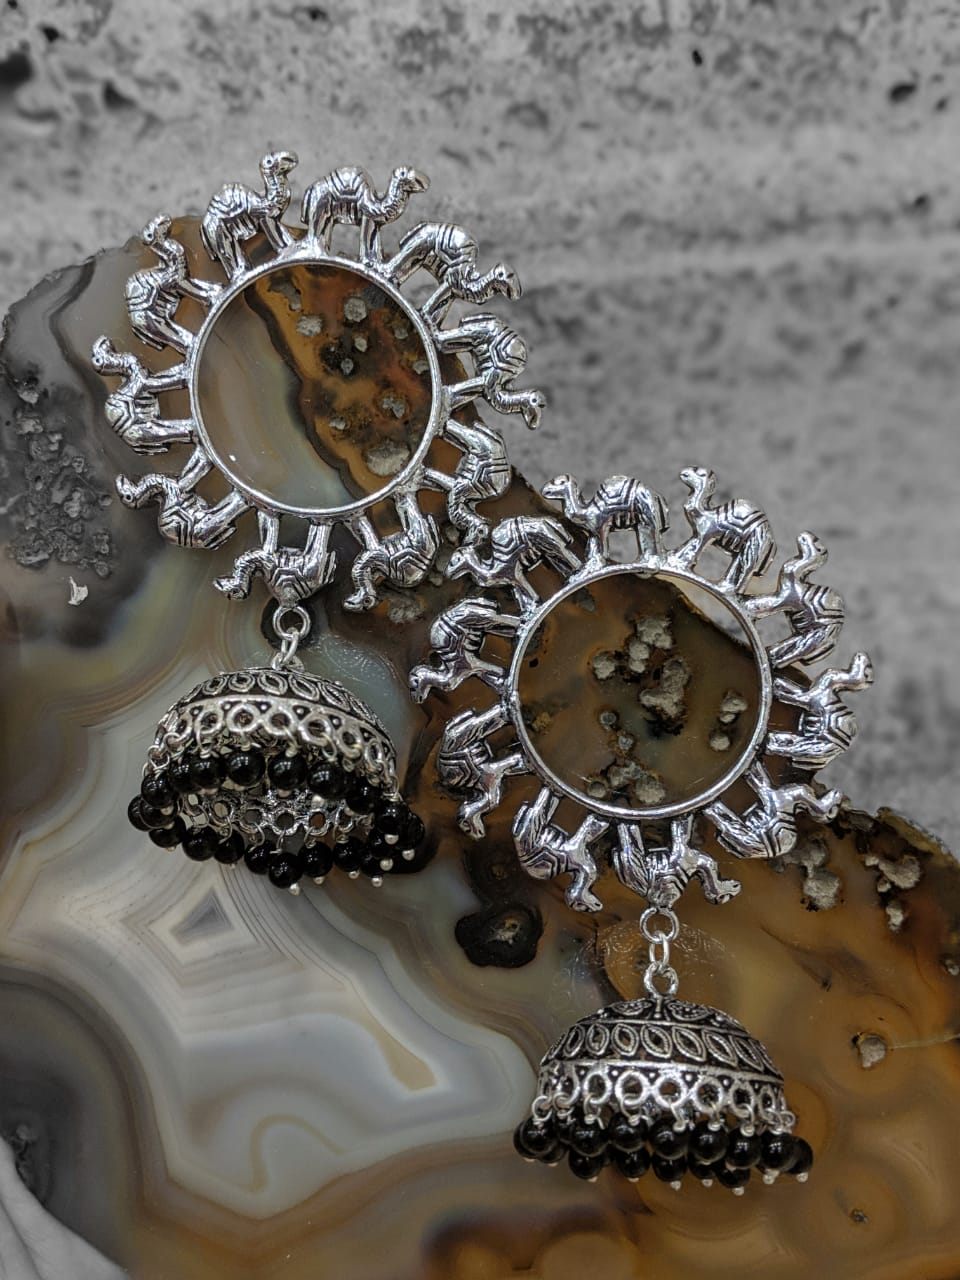 Digital Jhumki Earrings for Women Designer Oxidised Silver Earrings Afghani Tribal Bohemian Oxidised German Silver Stylish Party Wear Dangle Drop Earrings Jaipuri Tribal Camel Animal Antique Jewellery